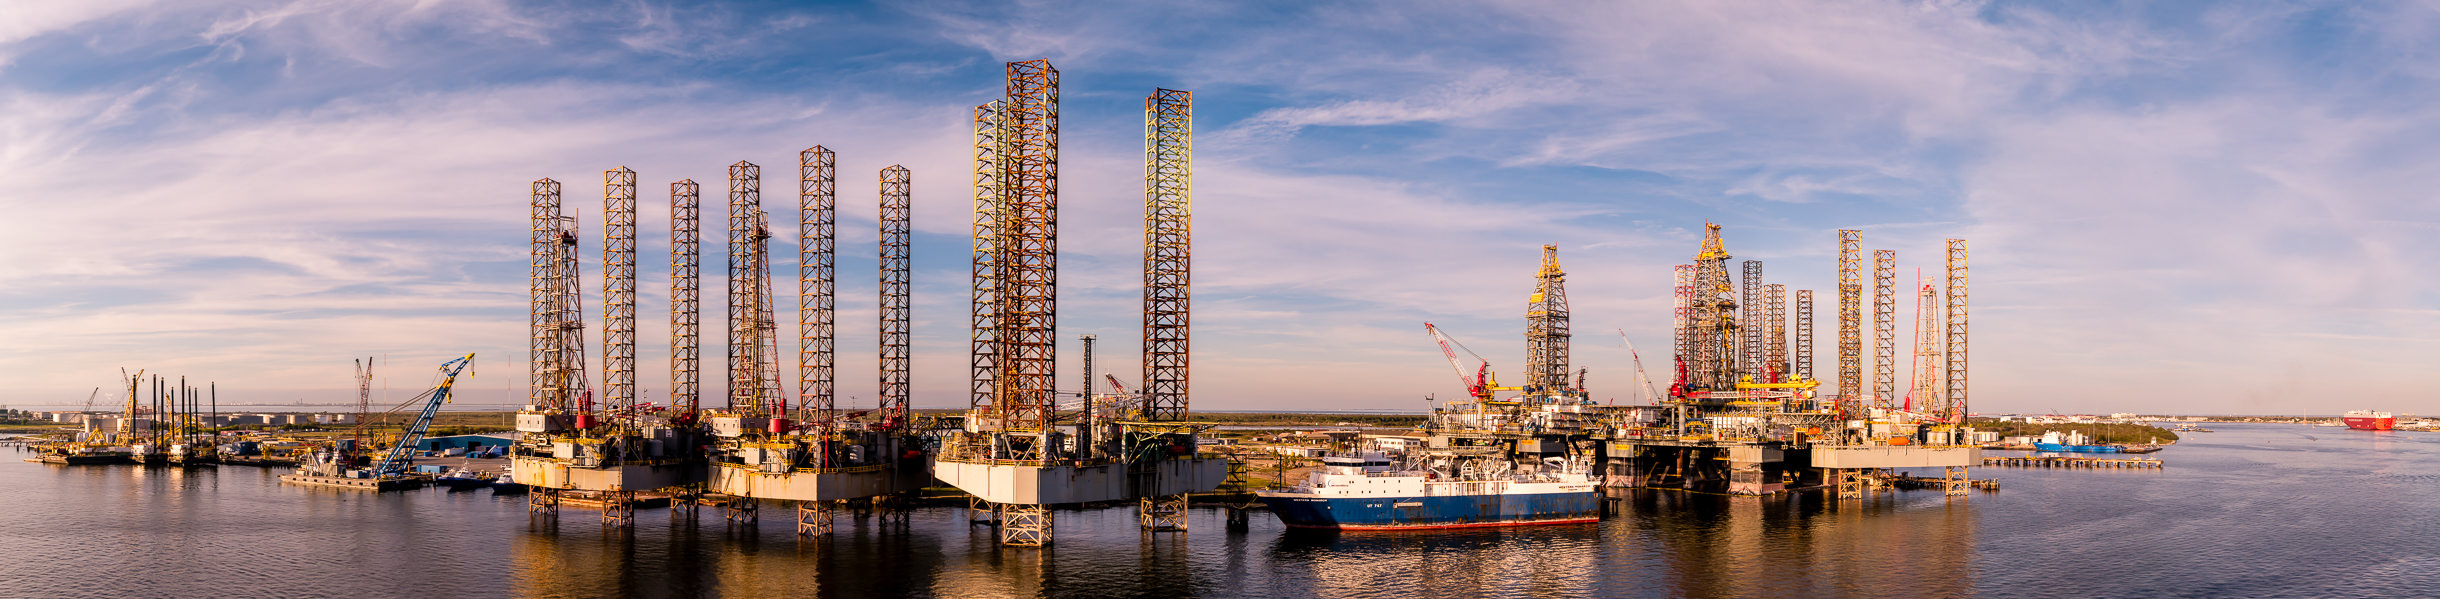 Long-legged oil platforms laid up for storage and repair at Pelican Island, Galveston, Texas.